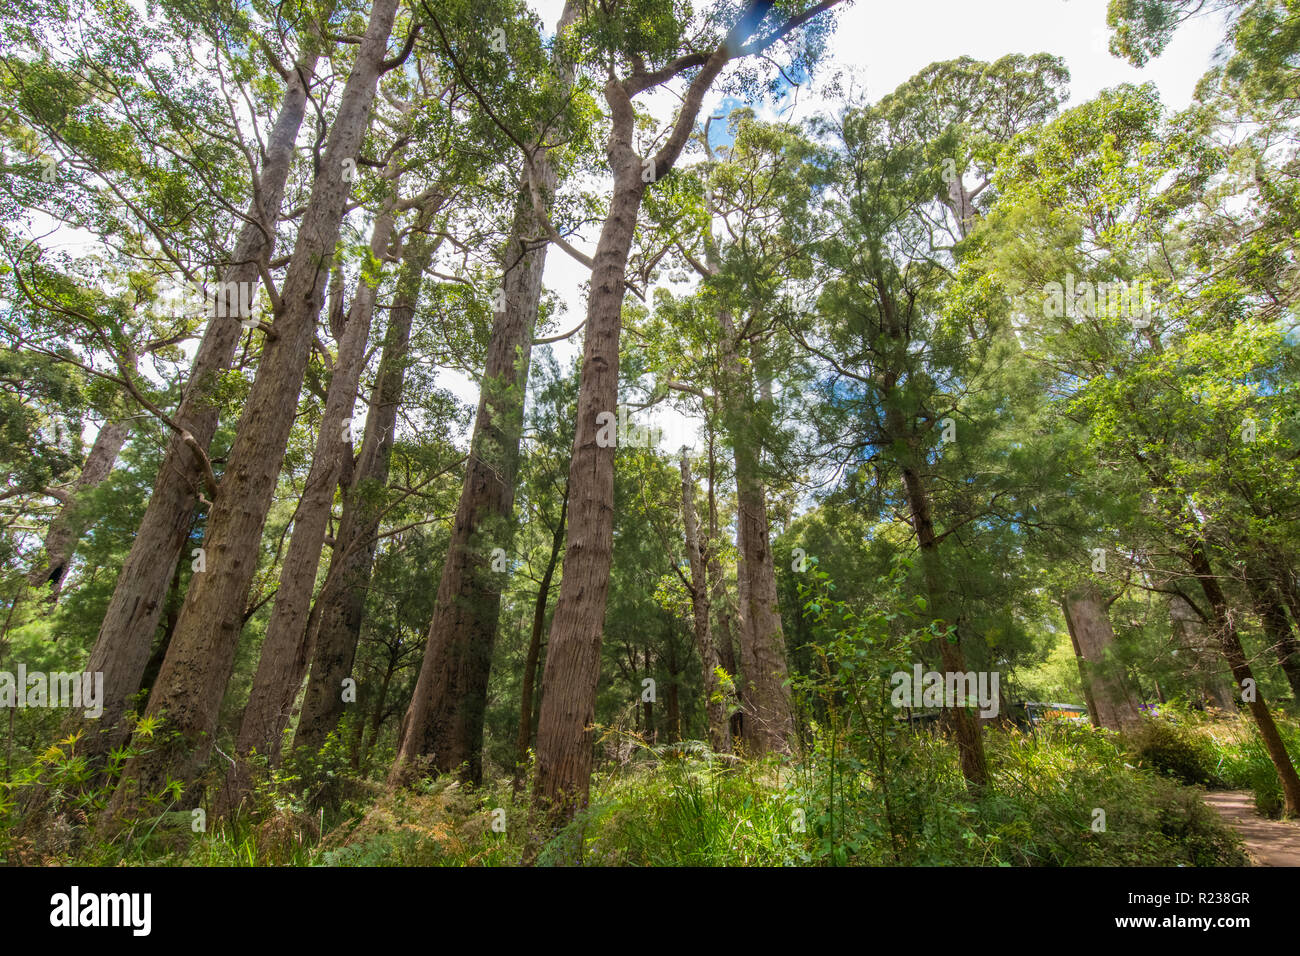 Tall trees, Valley of the Giants Tree Top Walk, Tingledale, Western Australia - Stock Image